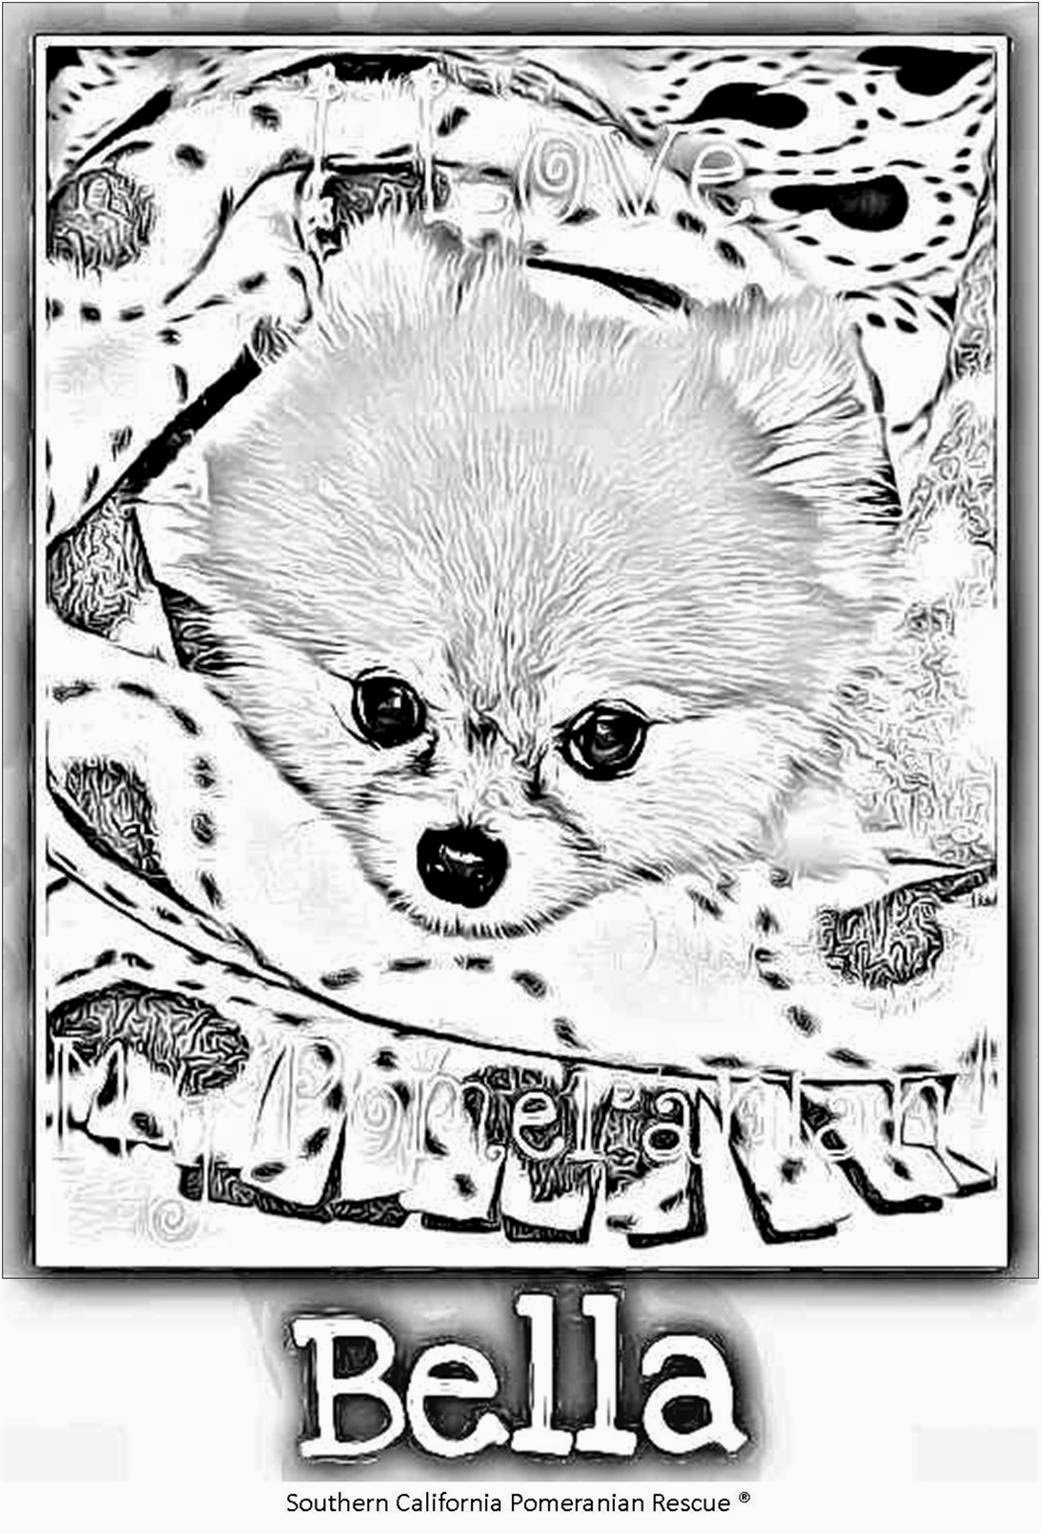 socalpomrescue scpr bella pomeranian the 800 petmeds dog